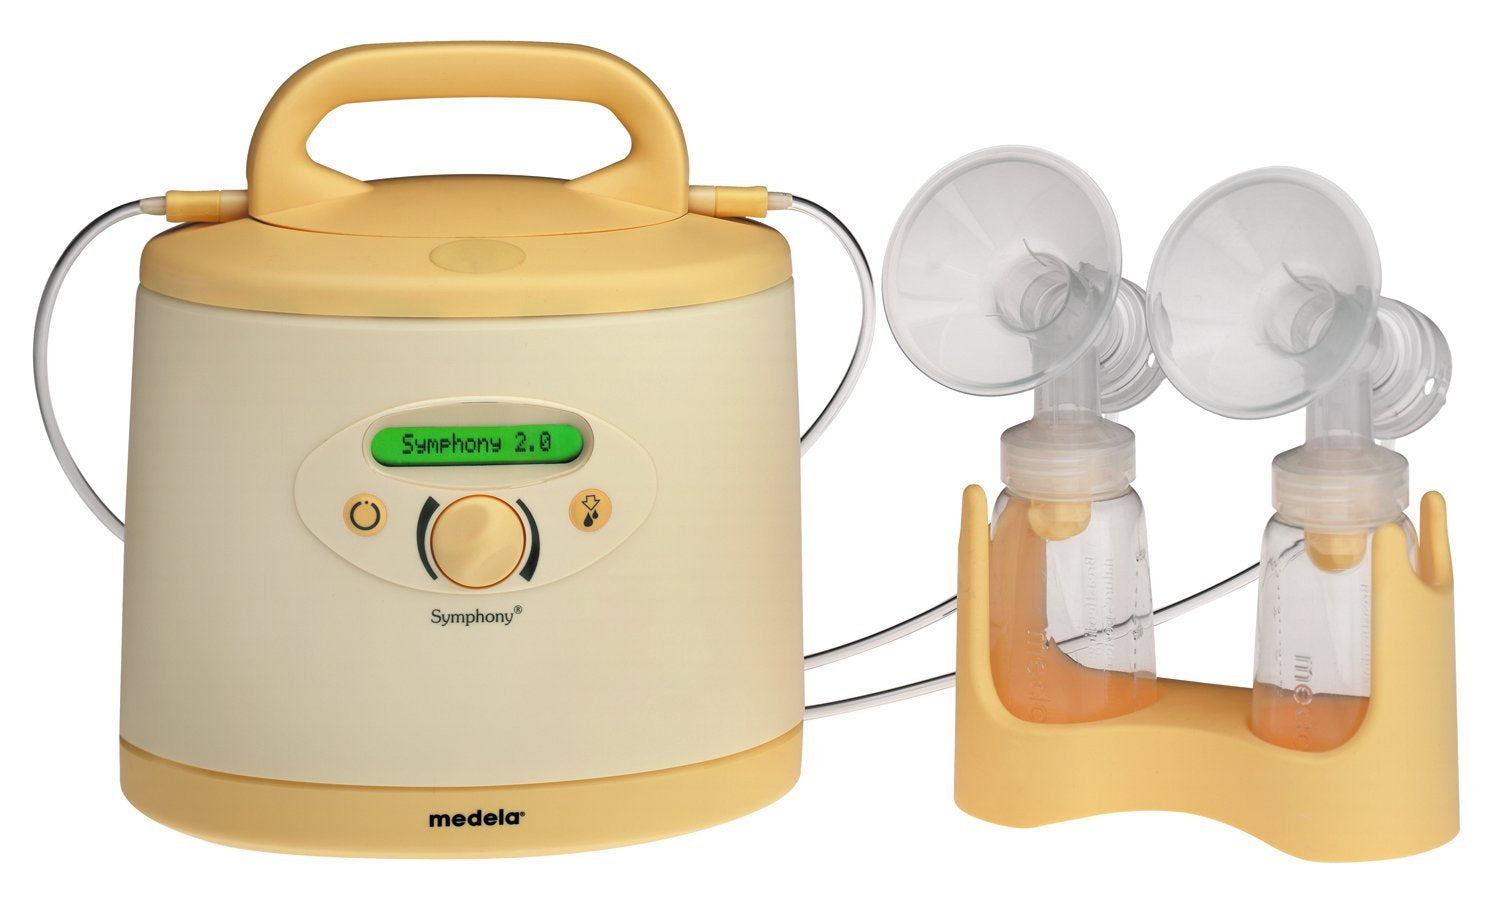 Medela Symphony Breast Pump Rental Augusta, Georgia